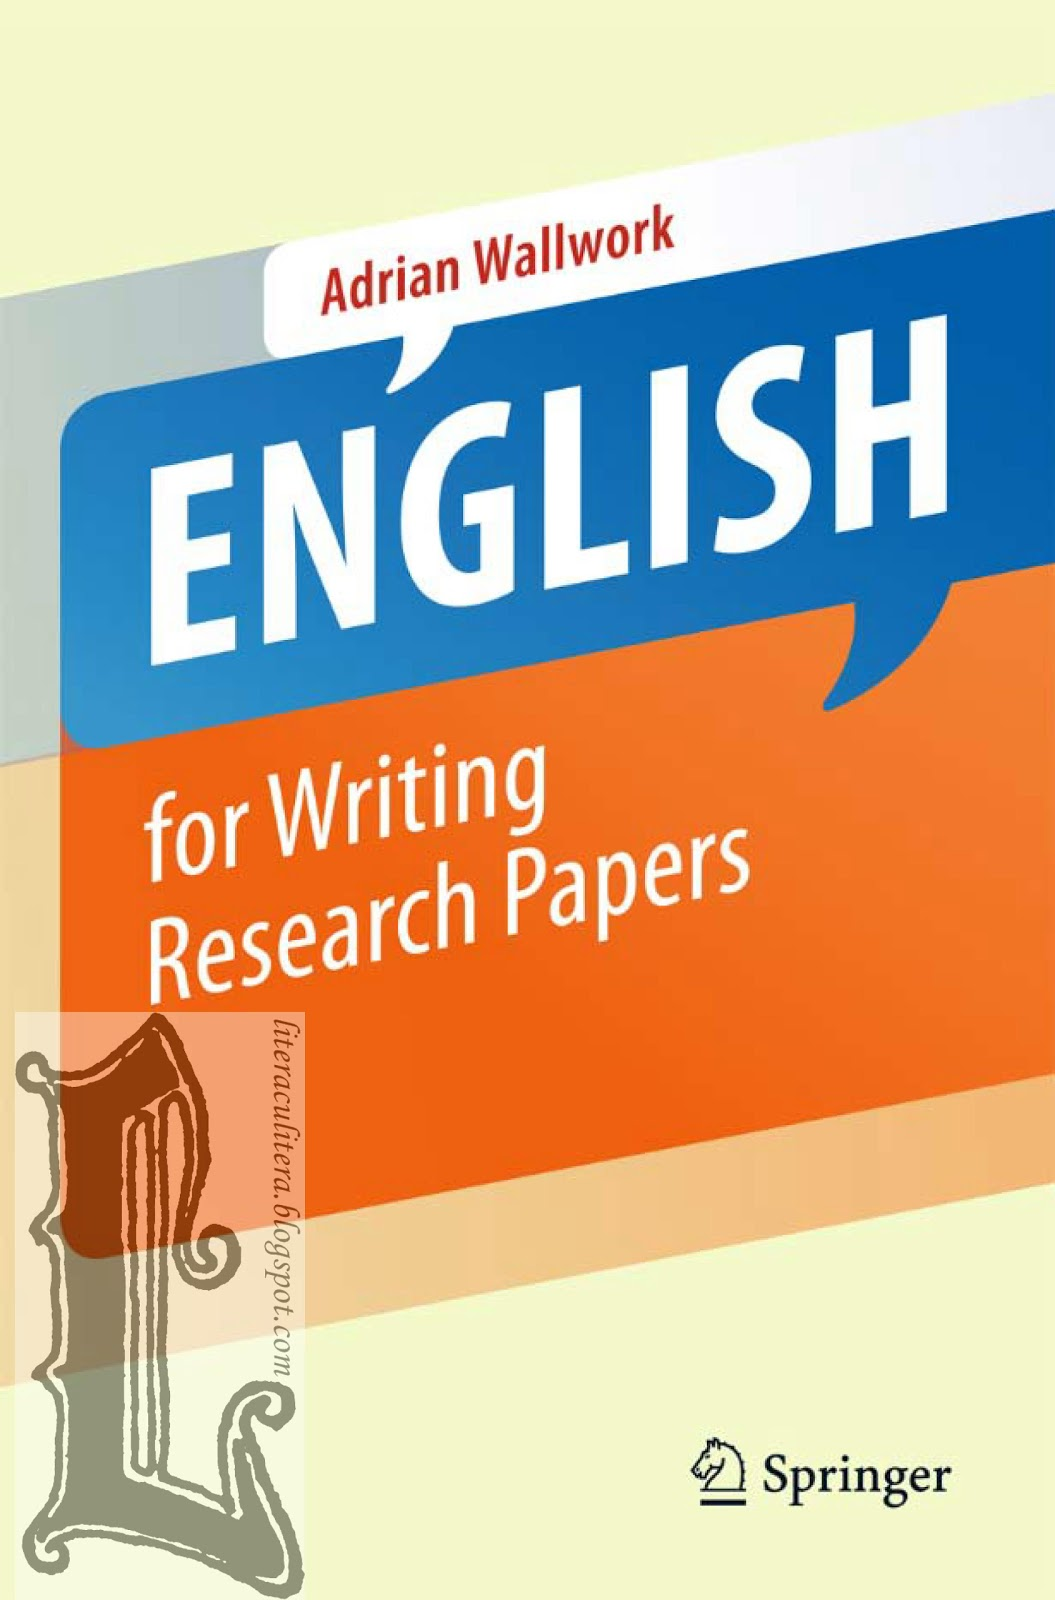 english writing research papers Sample research paper in english your job is to think about how these comparisons and contrasts create meaningful connections to a larger issue, sample research paper in english english writing software reviews mac write my essay research writing often.